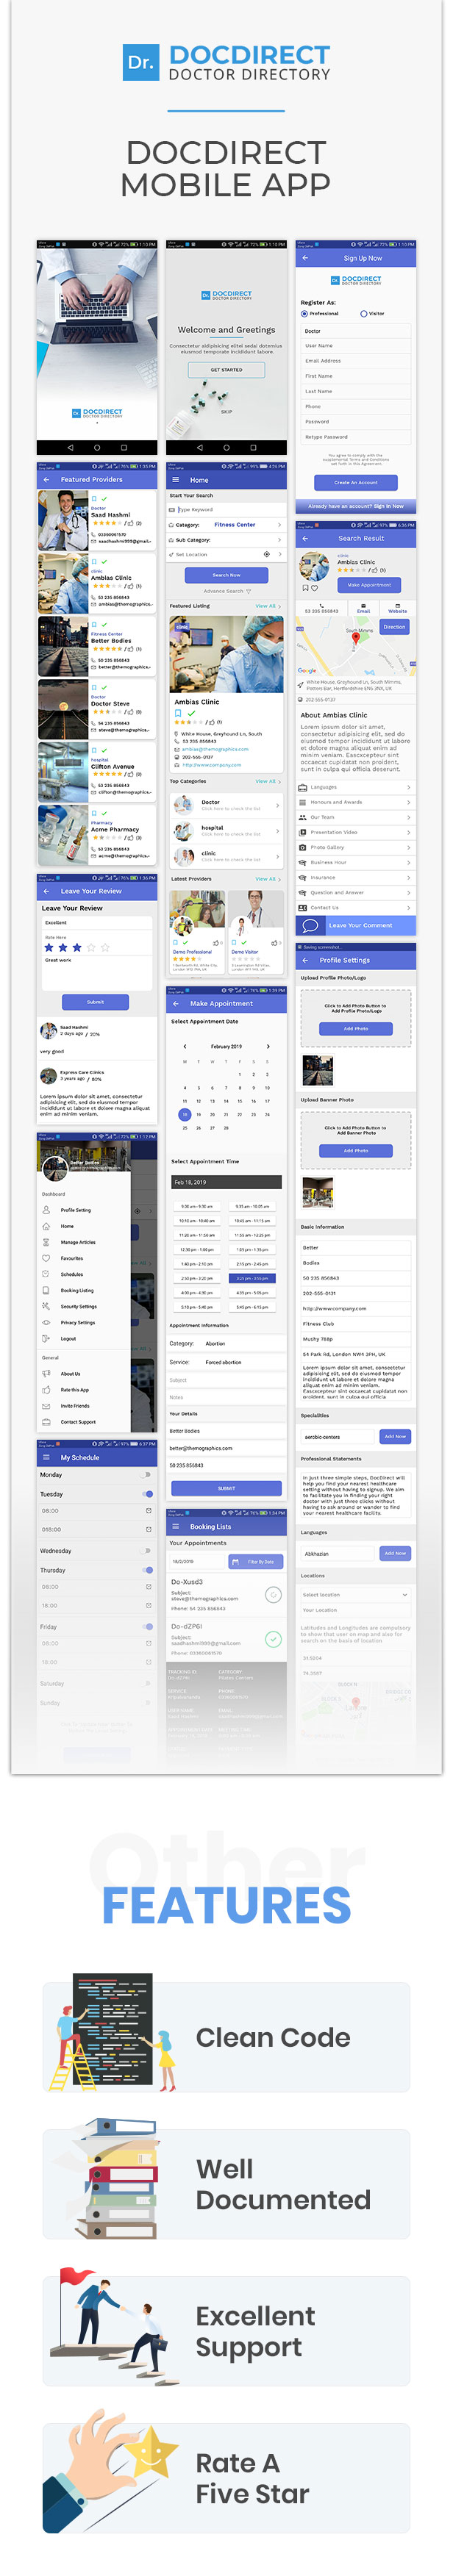 DocDirect App - Doctor Directory Android Native App - 1